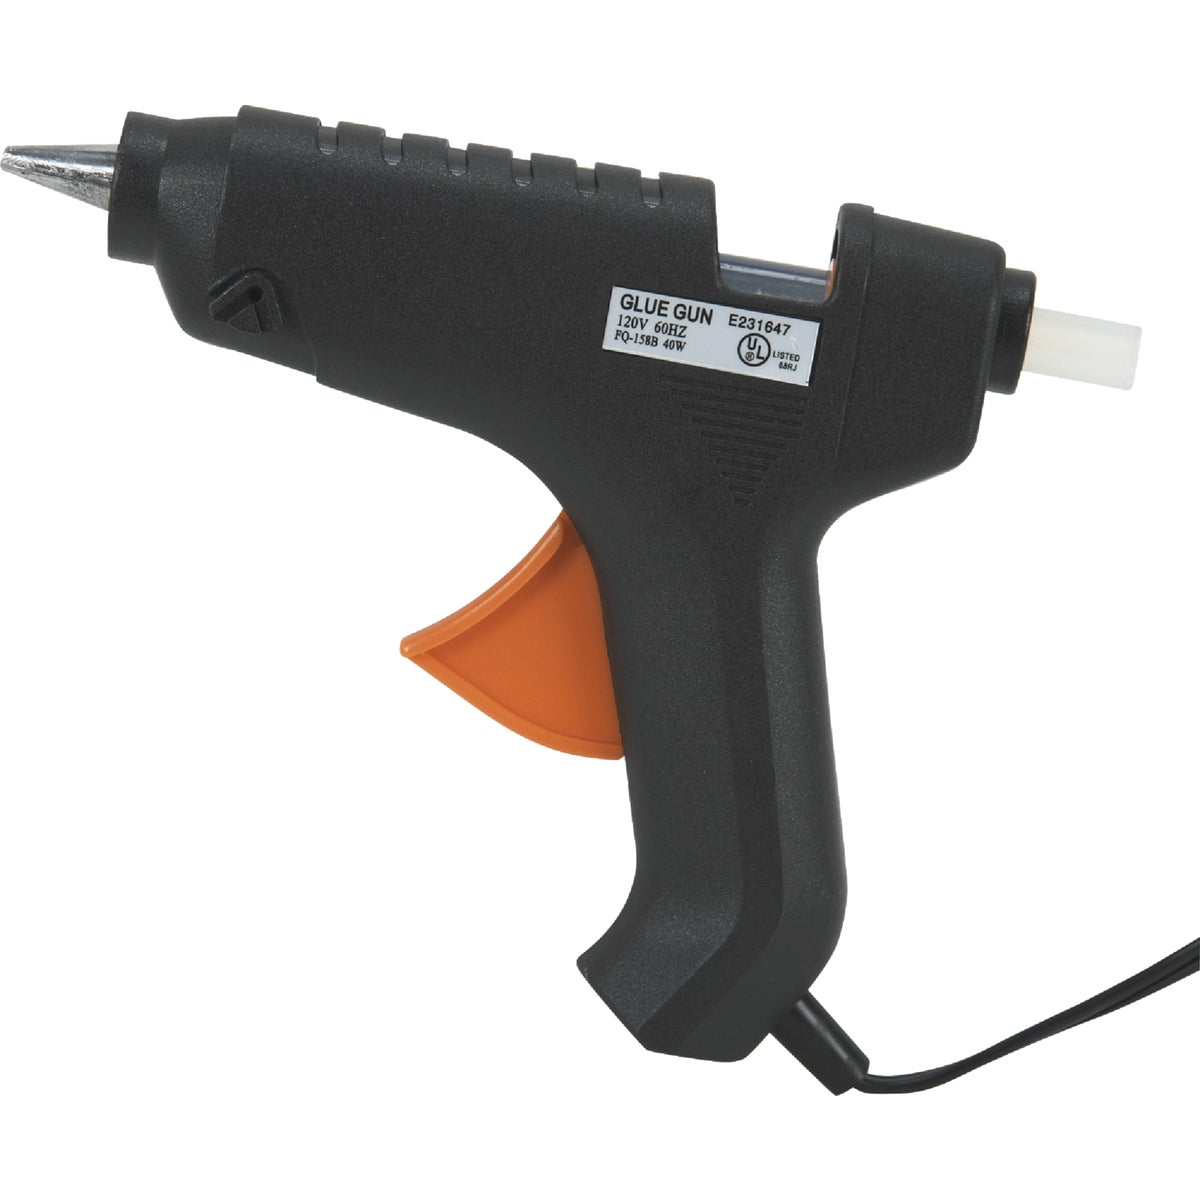 HI-TEMPERATURE GLUE GUN